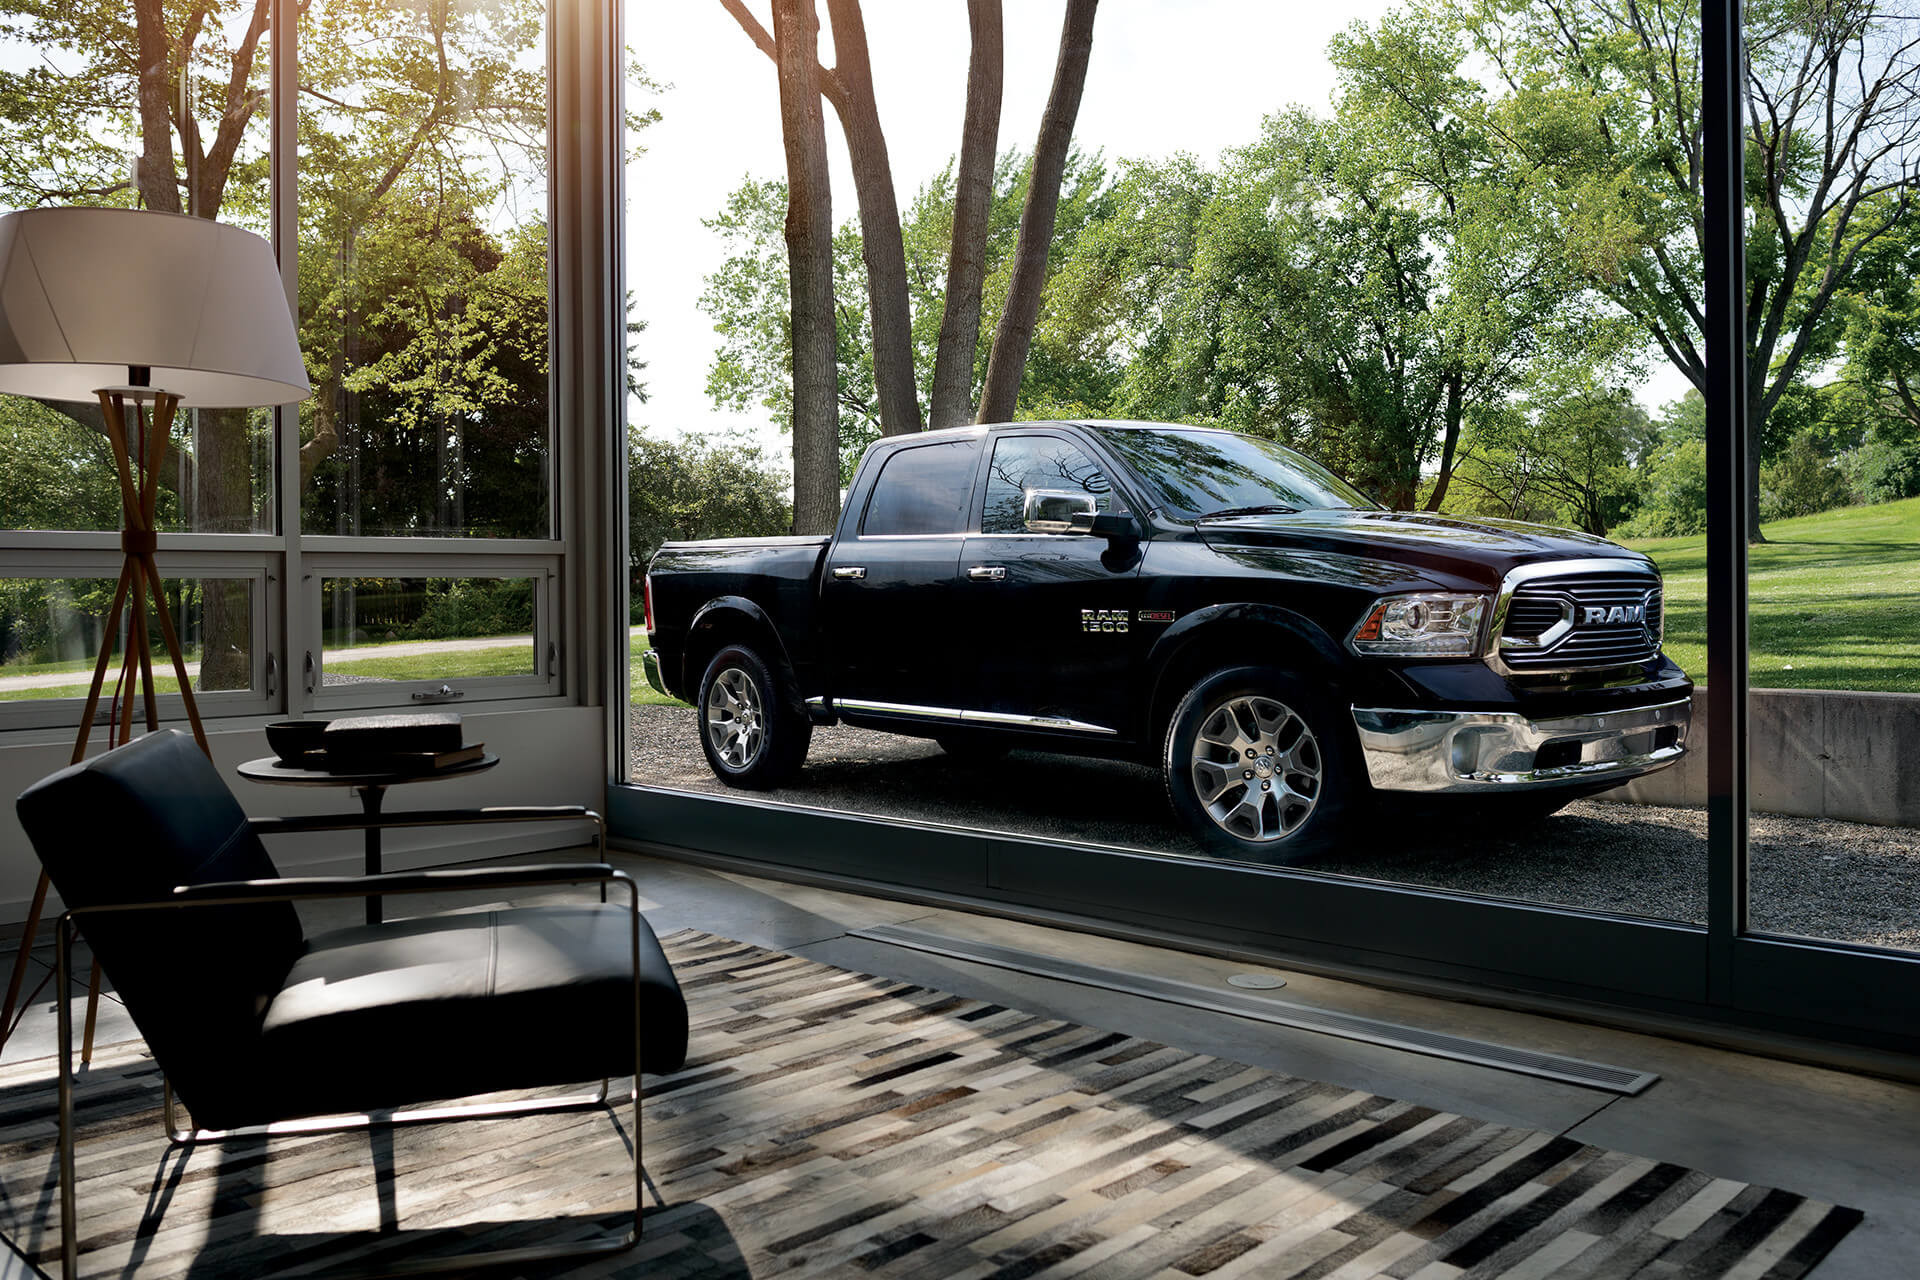 2018 RAM 1500 exterior side view shown in black